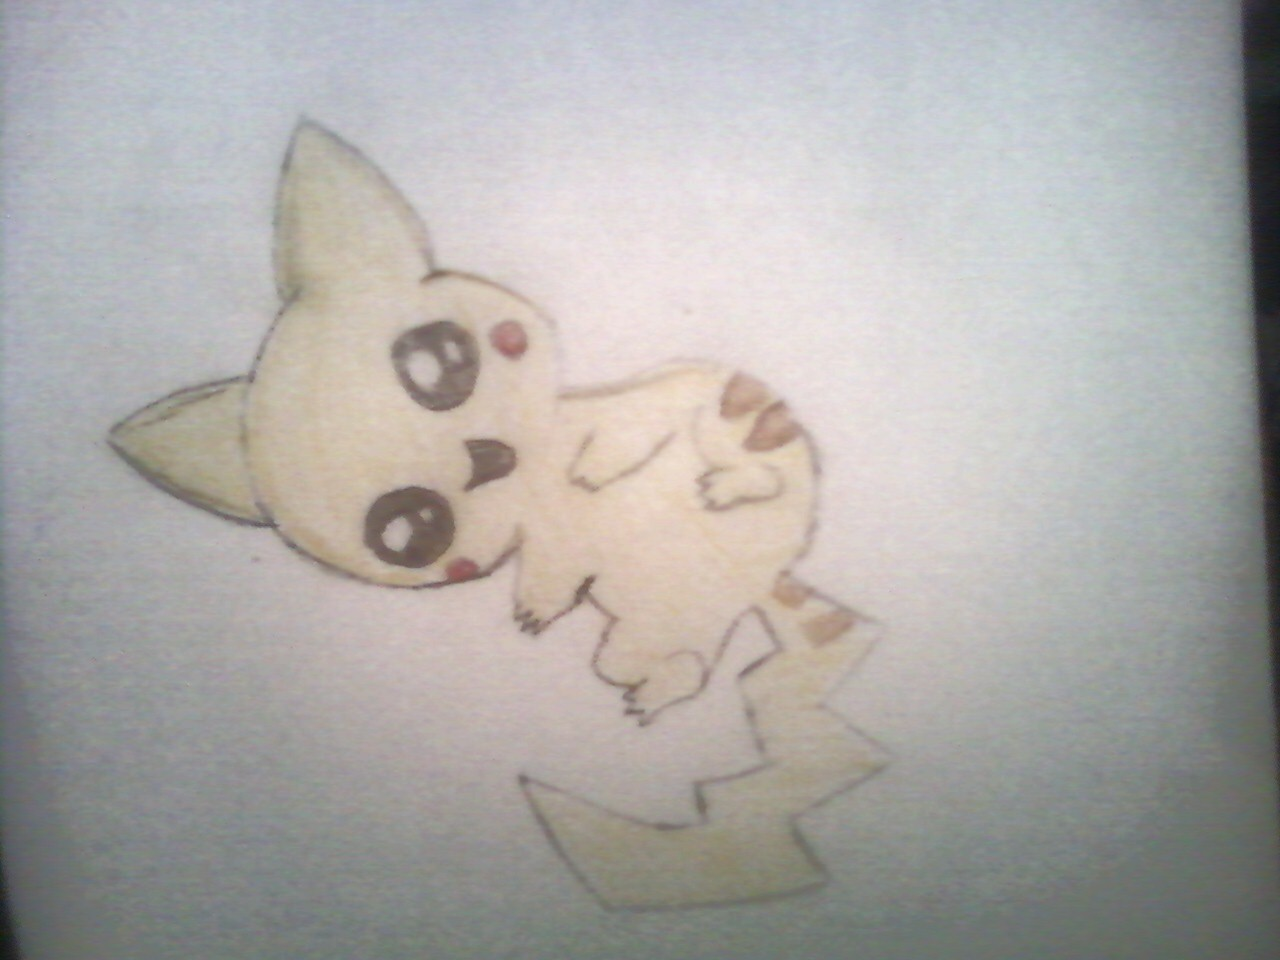 baby pikachu picture by smurfz drawingnow